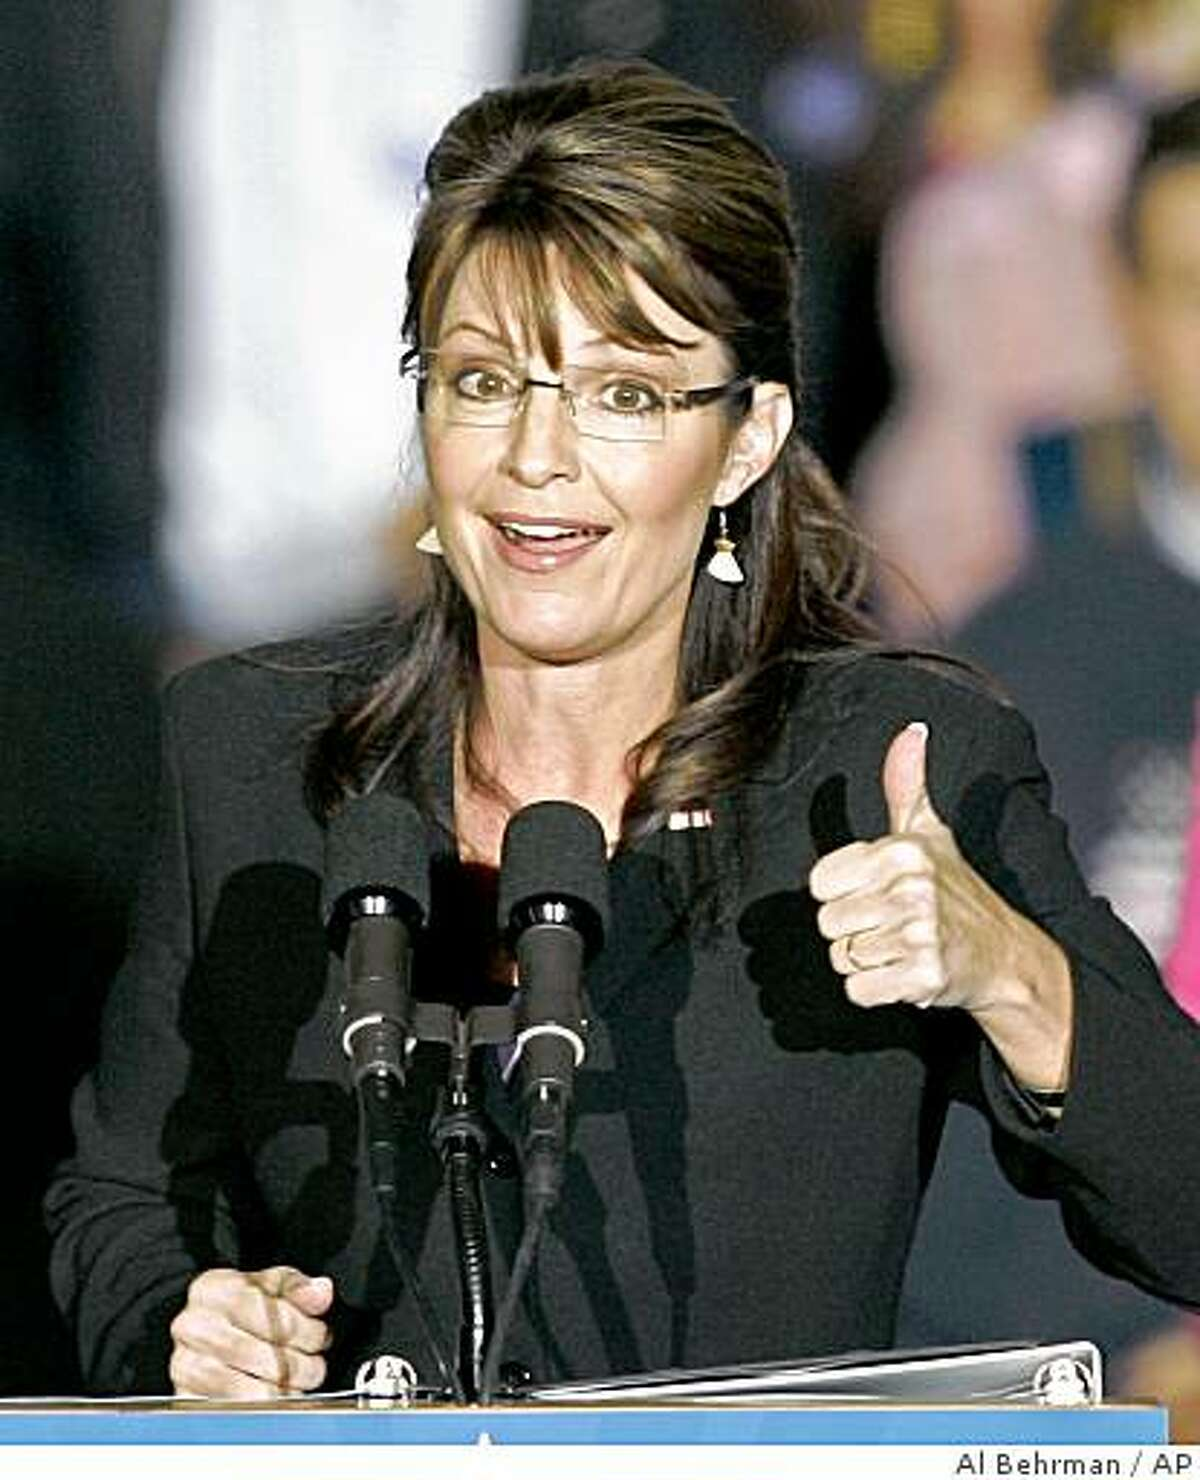 Republican vice presidential candidate Alaska Gov. Sarah Palin gives a thumbs up sign to a supporter during a rally, Wednesday, Oct. 22, 2008, at Lunken Airport in Cincinnati. (AP Photo/Al Behrman)